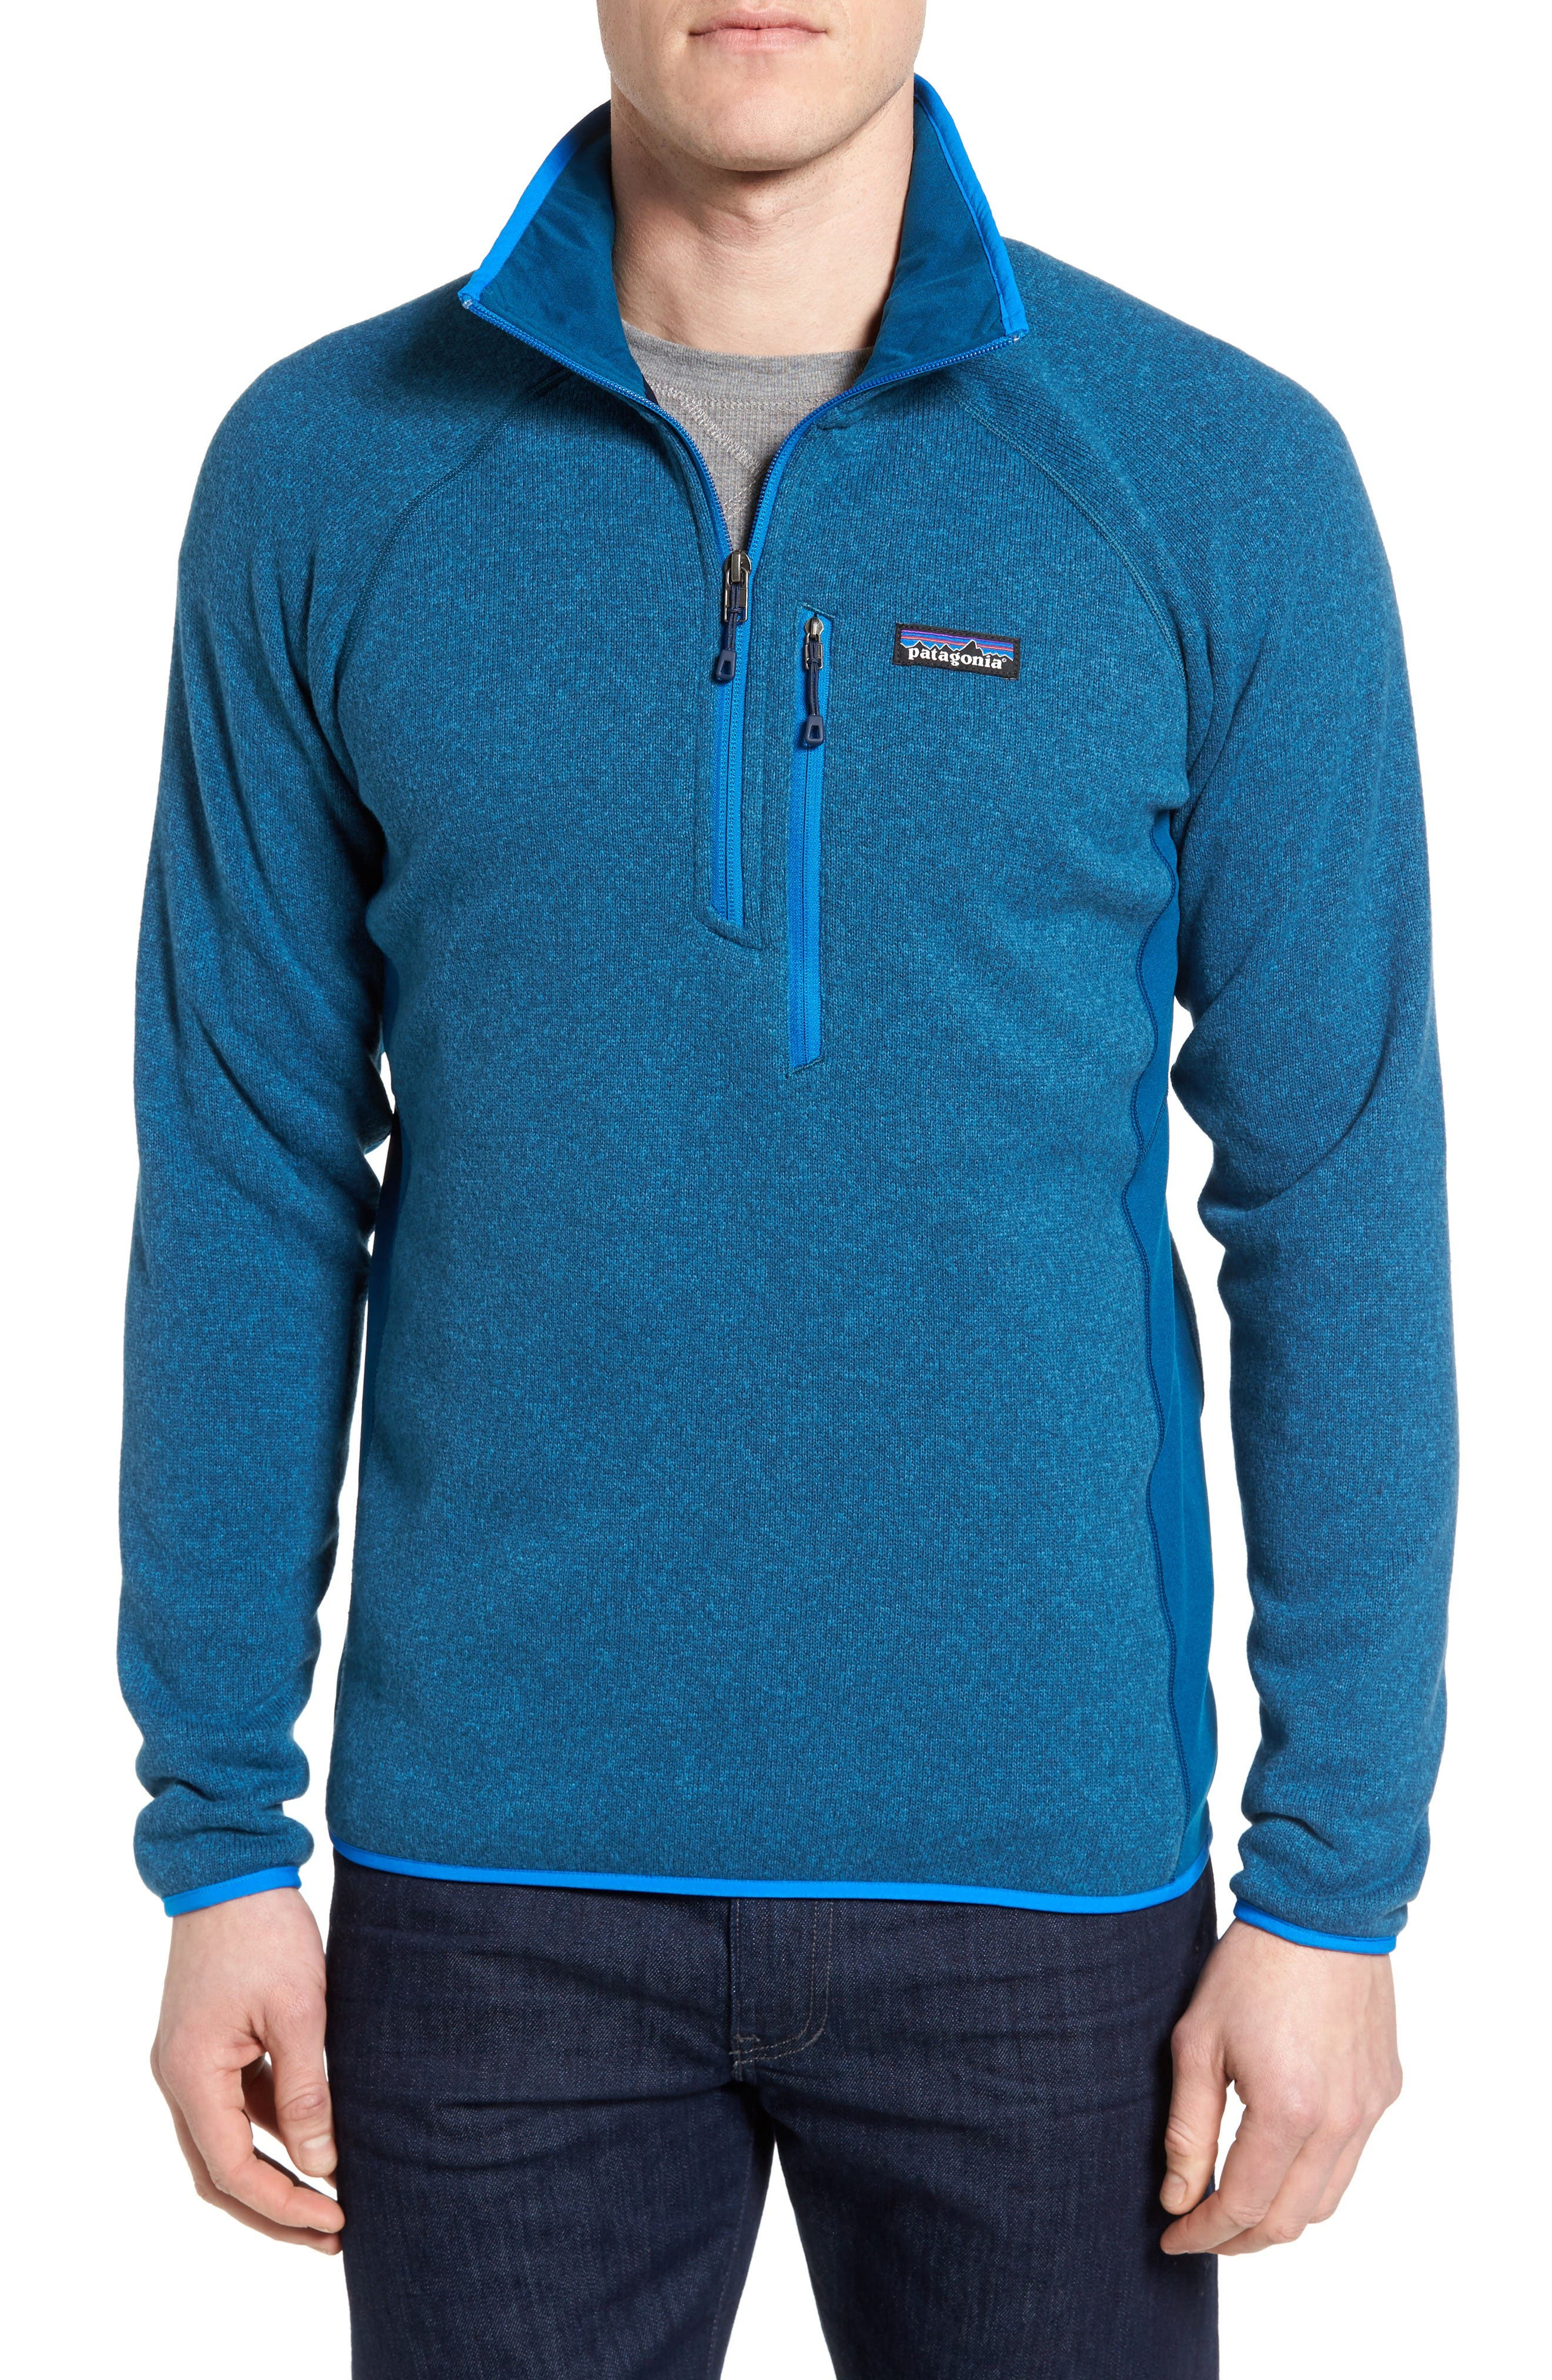 Patagonia Performance Pullover